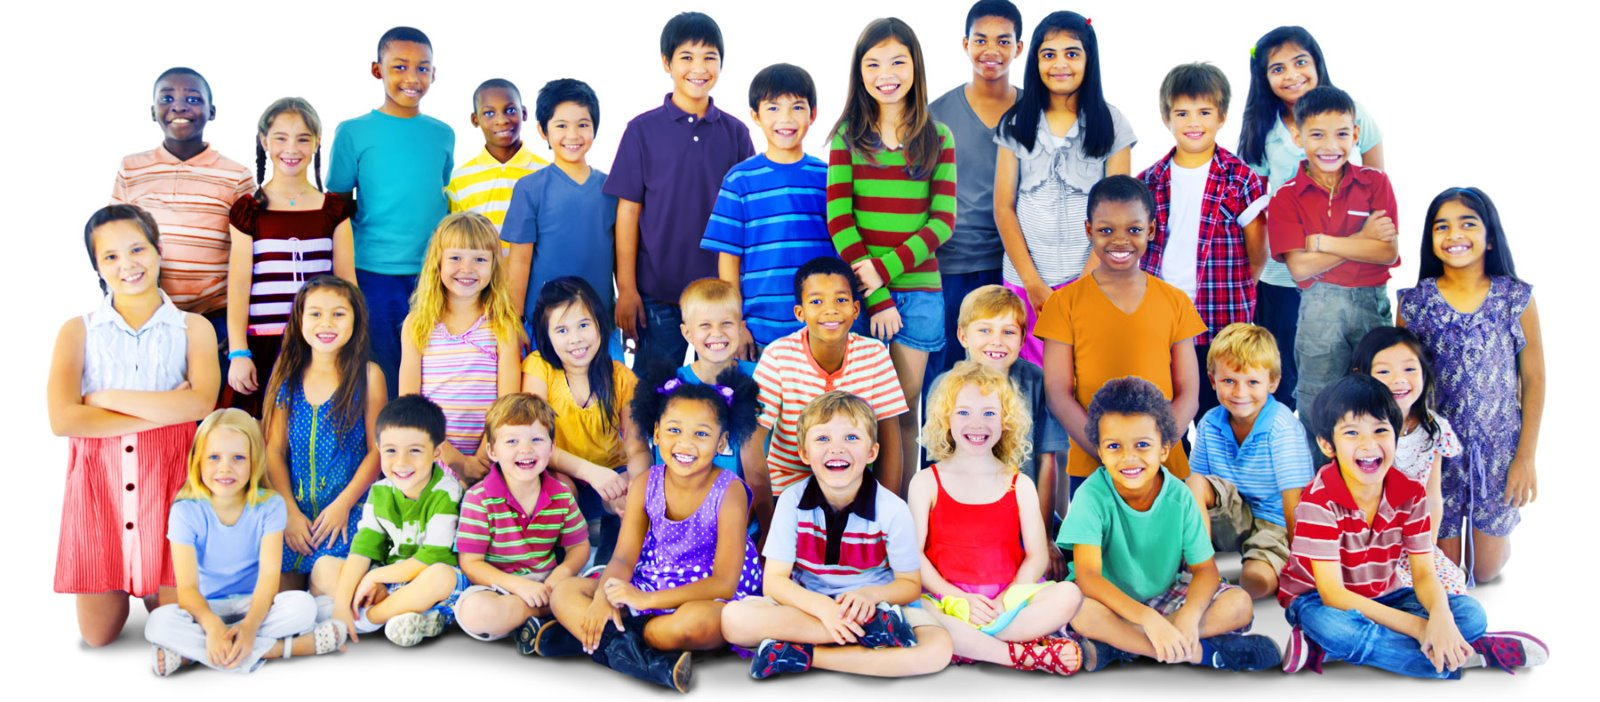 Multicultural group of children and youth